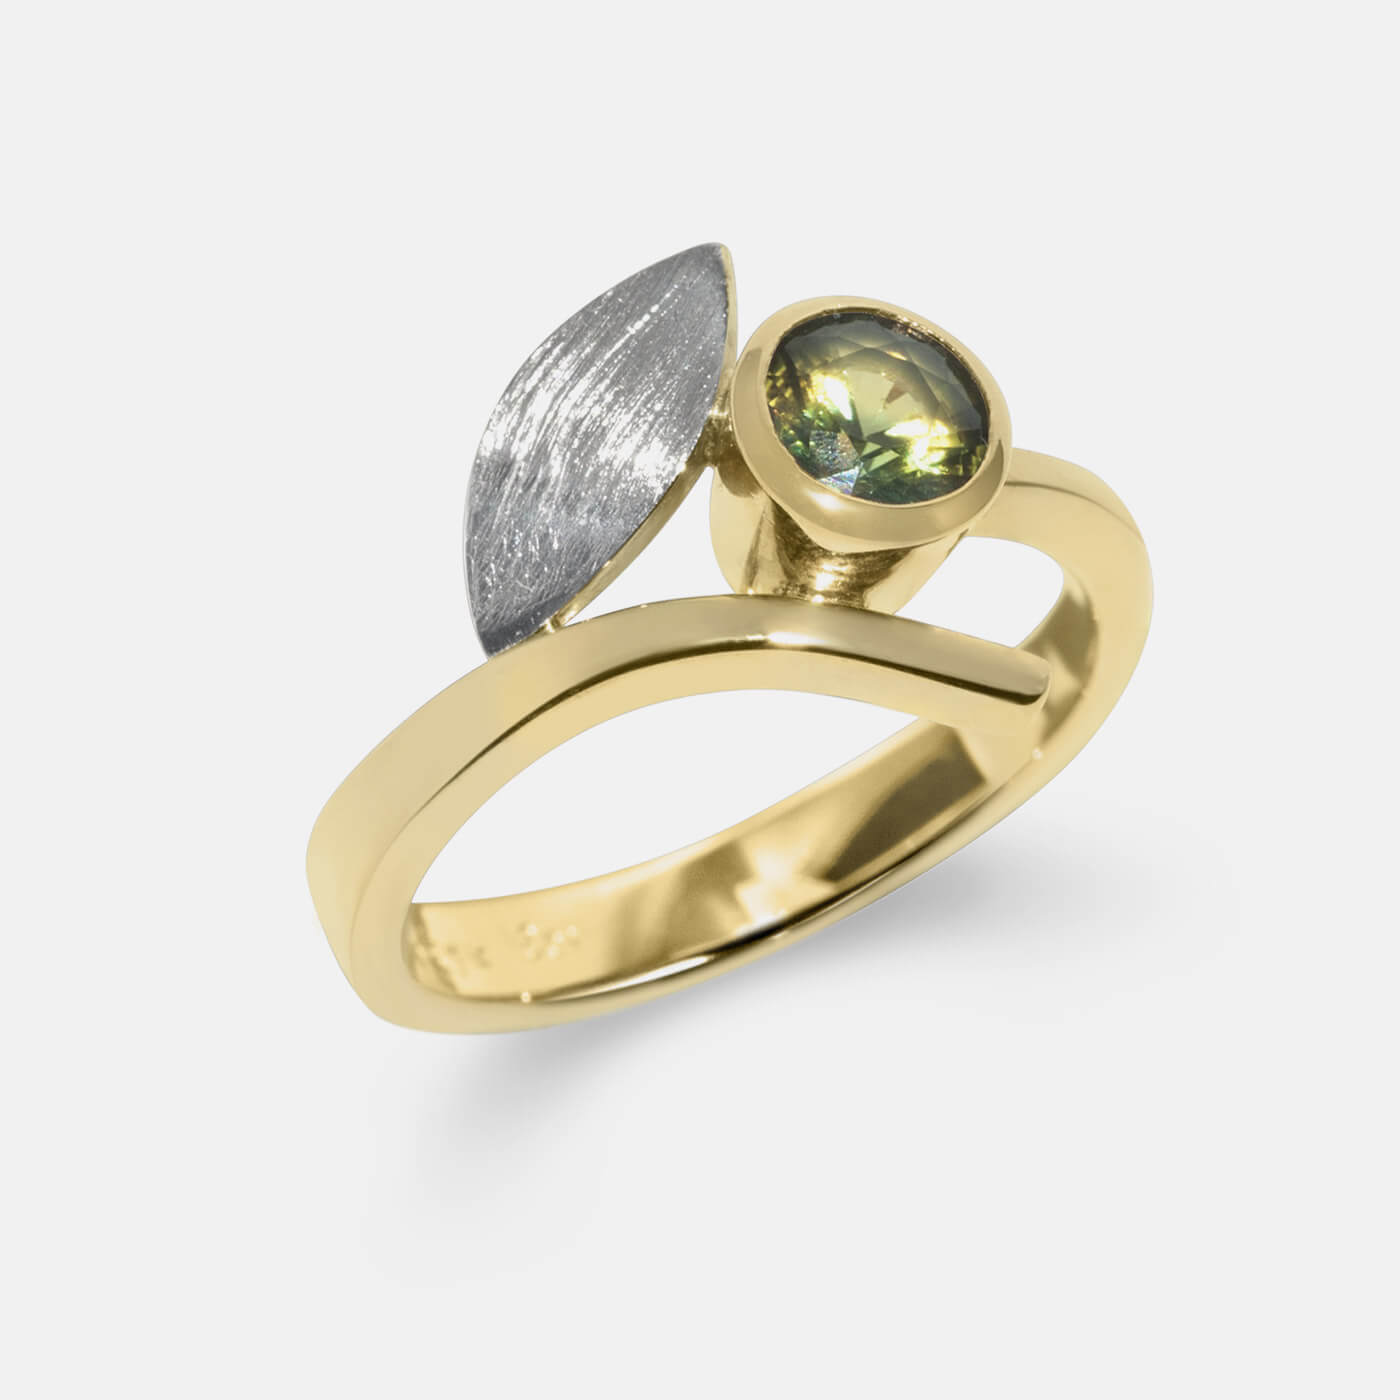 Stylised Leaf Engagement Ring